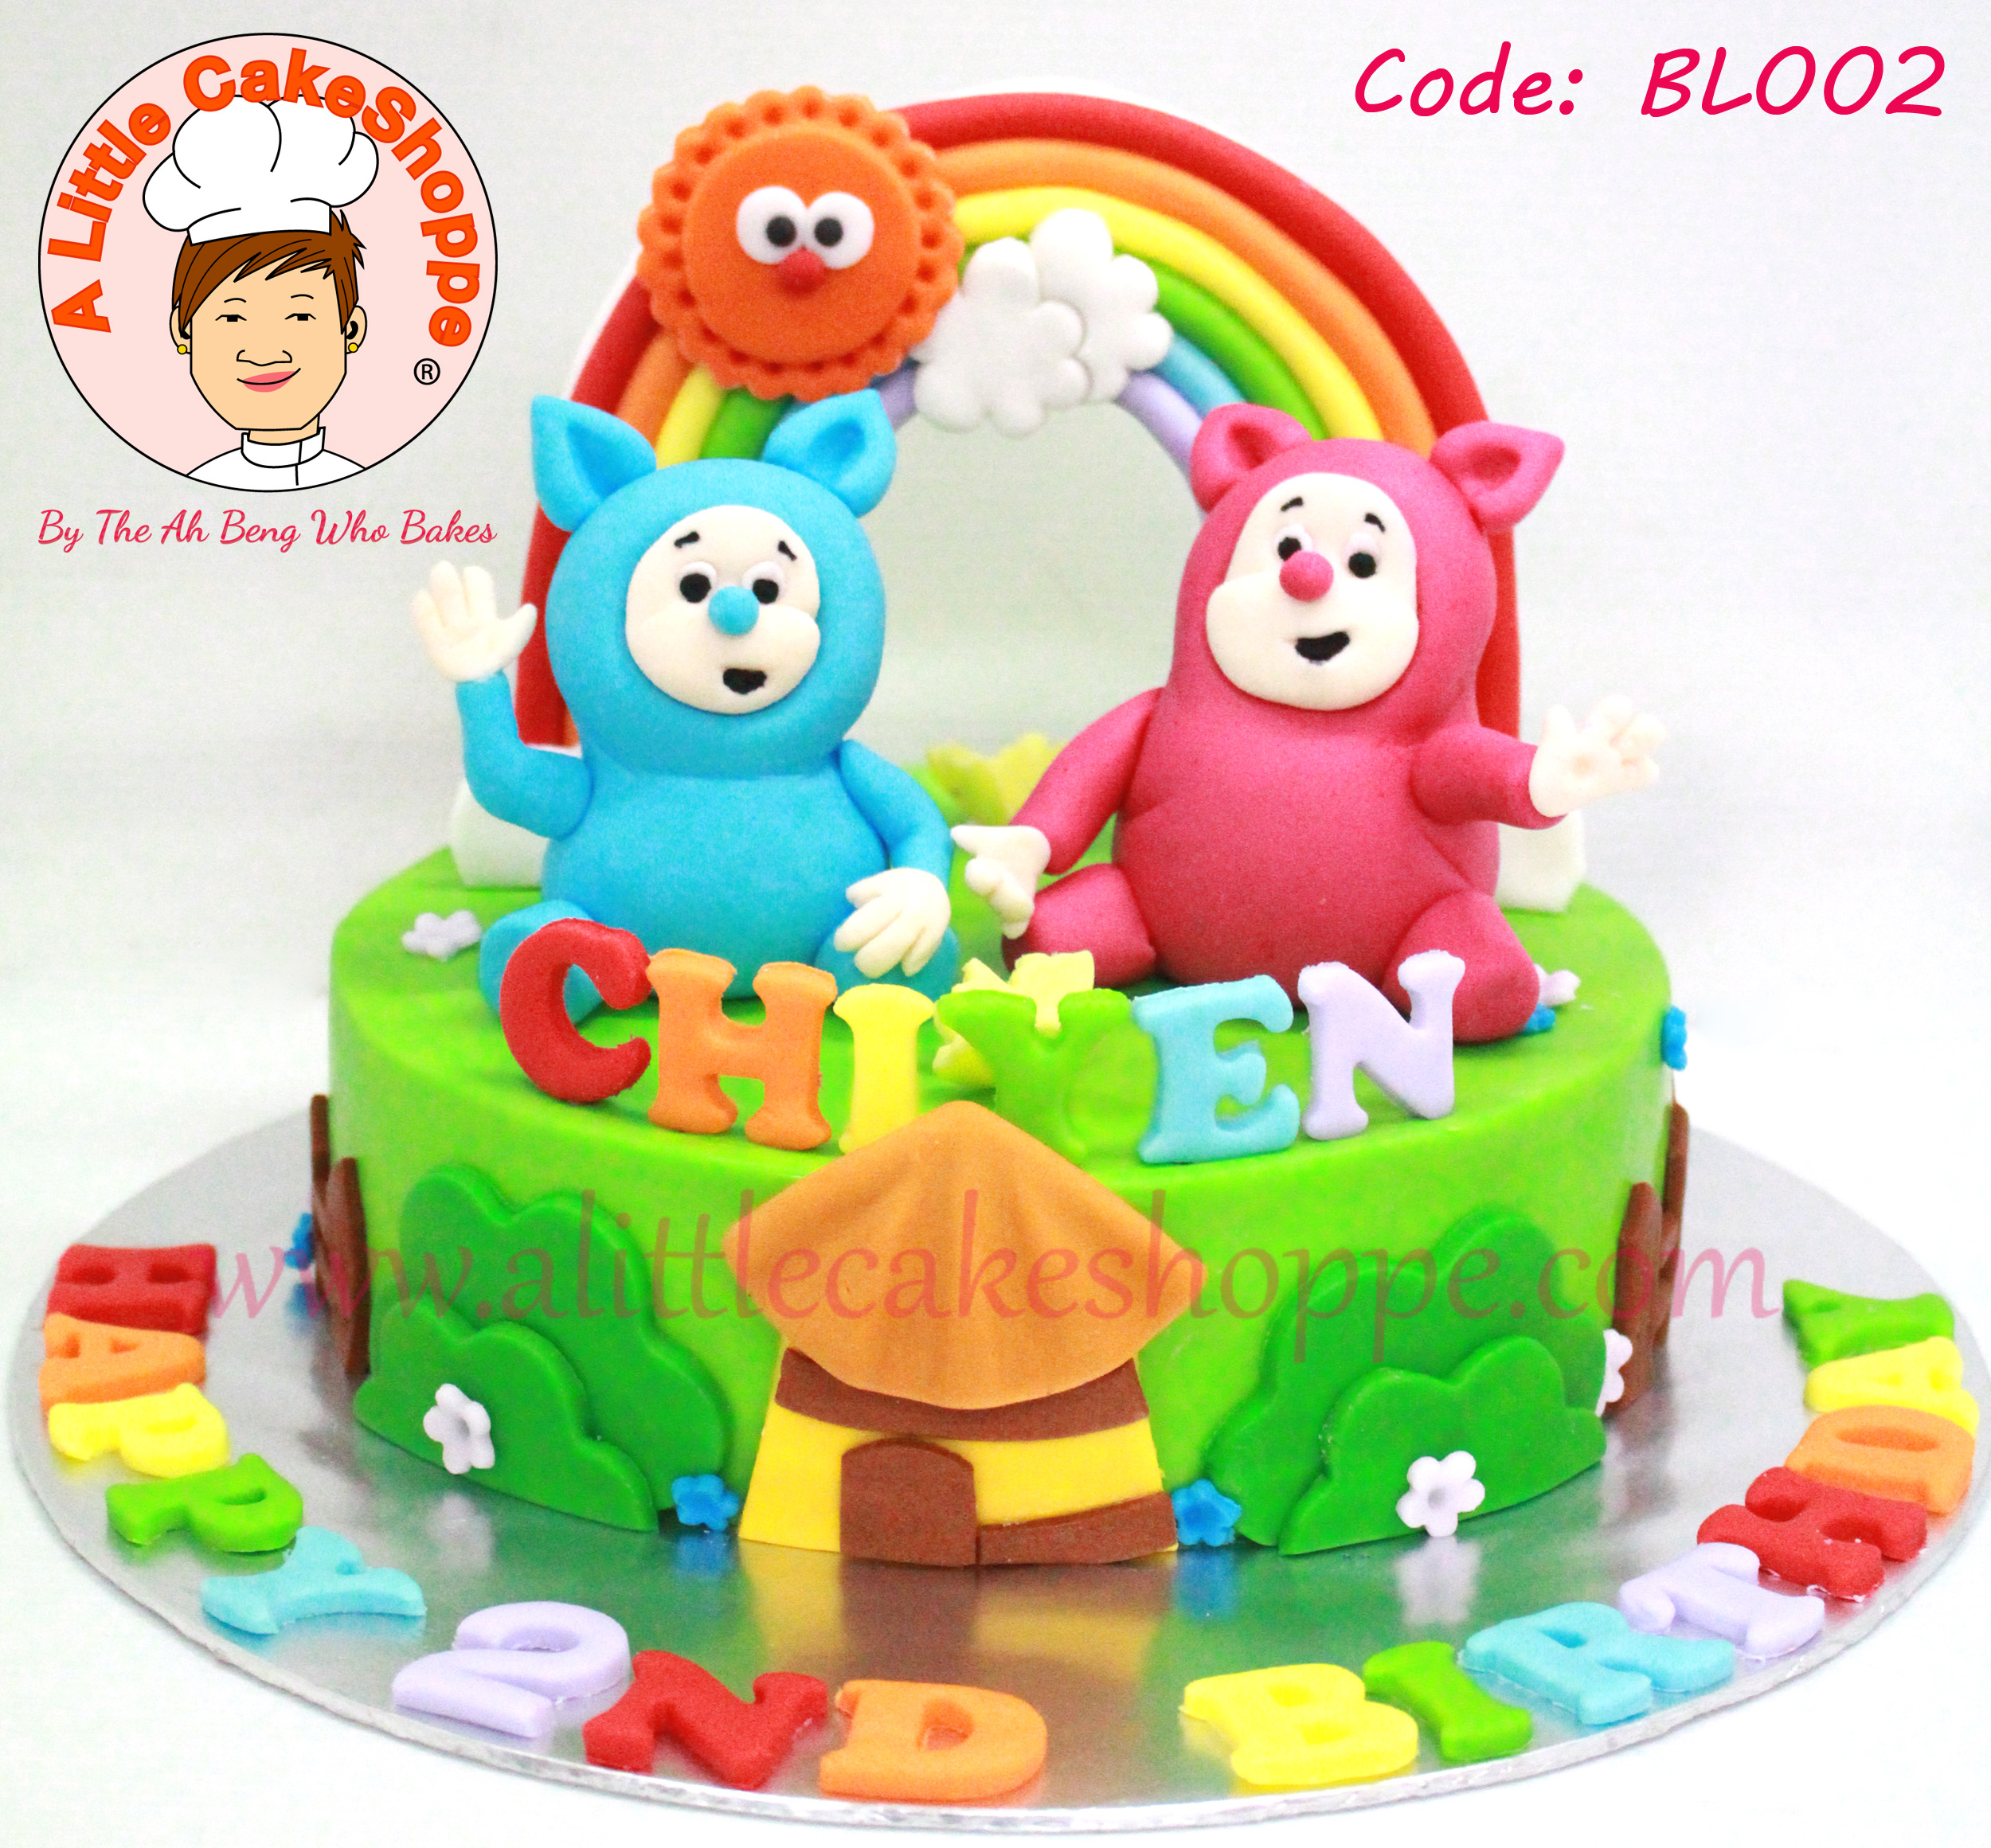 Best Customised Cake Shop Singapore custom cake 2D 3D birthday cake cupcakes desserts wedding corporate events anniversary 1st birthday 21st birthday fondant fresh cream buttercream cakes alittlecakeshoppe a little cake shoppe compliments review singapore bakers SG cake shop cakeshop ah beng who bakes baby tv